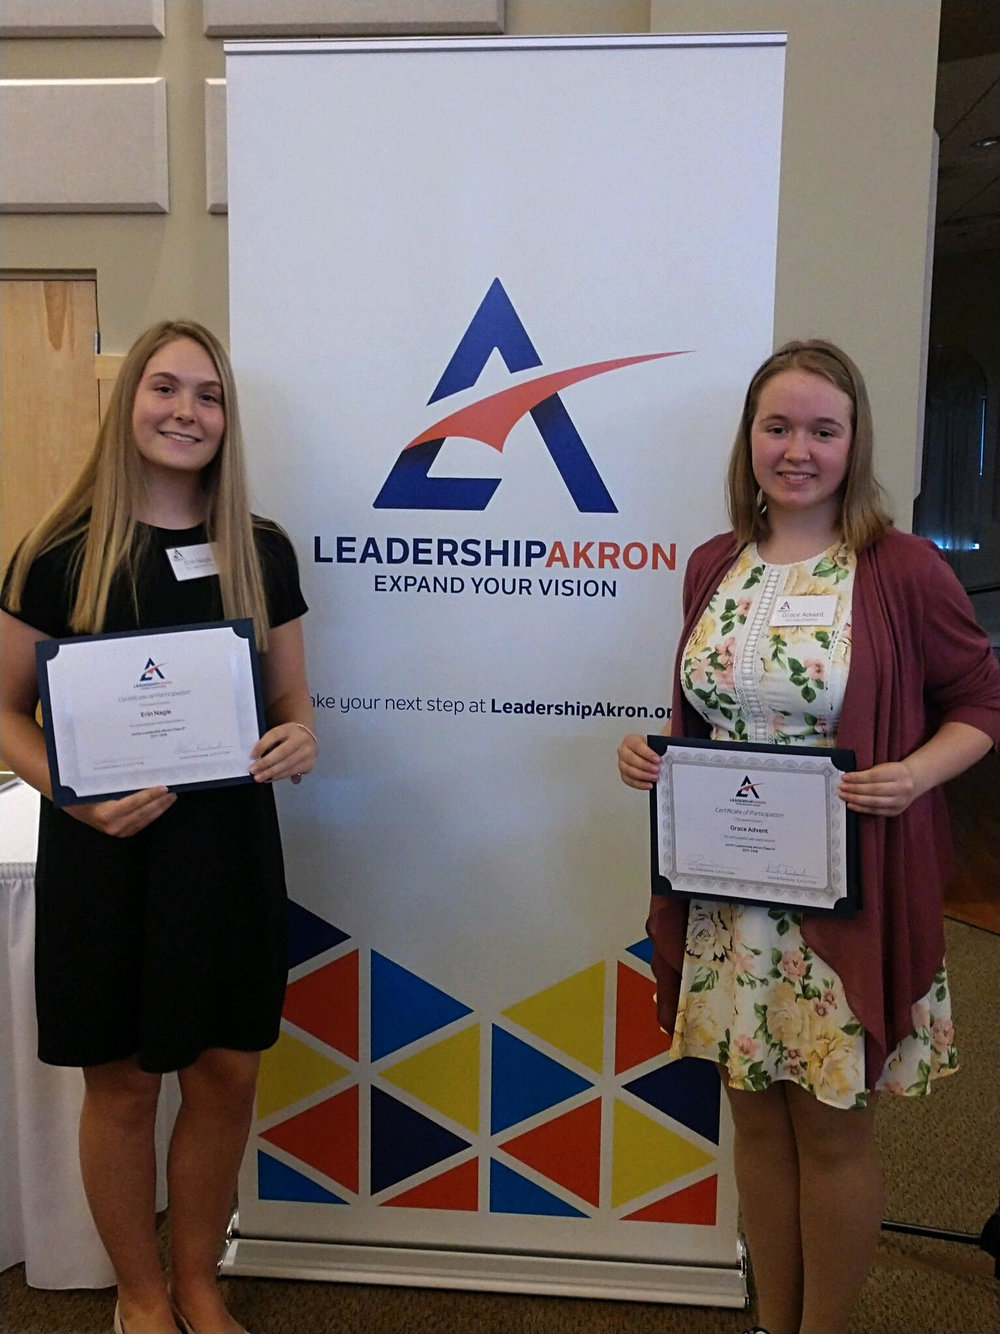 Erin Nagle  and  Grace Advent  display their diplomas from the Leadership Akron graduation ceremony.